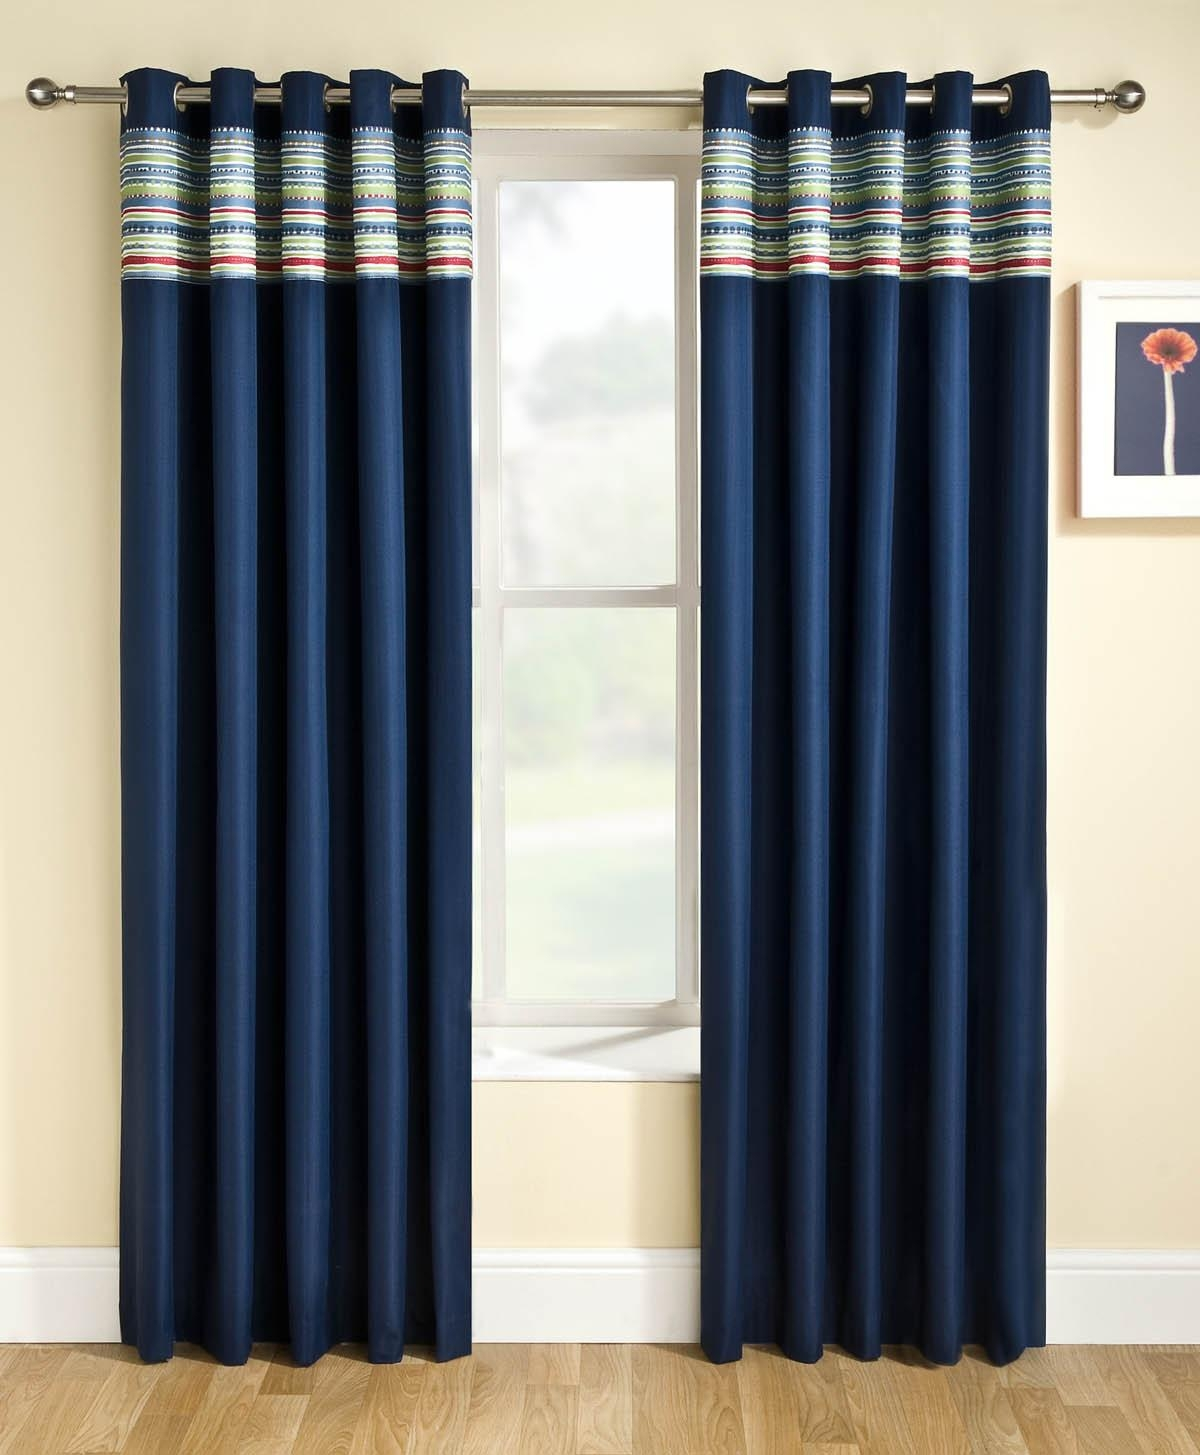 Siesta Blackout Eyelet Curtains Blue Free Uk Delivery Terrys Inside Blue Blackout Curtains Eyelet (Image 13 of 15)